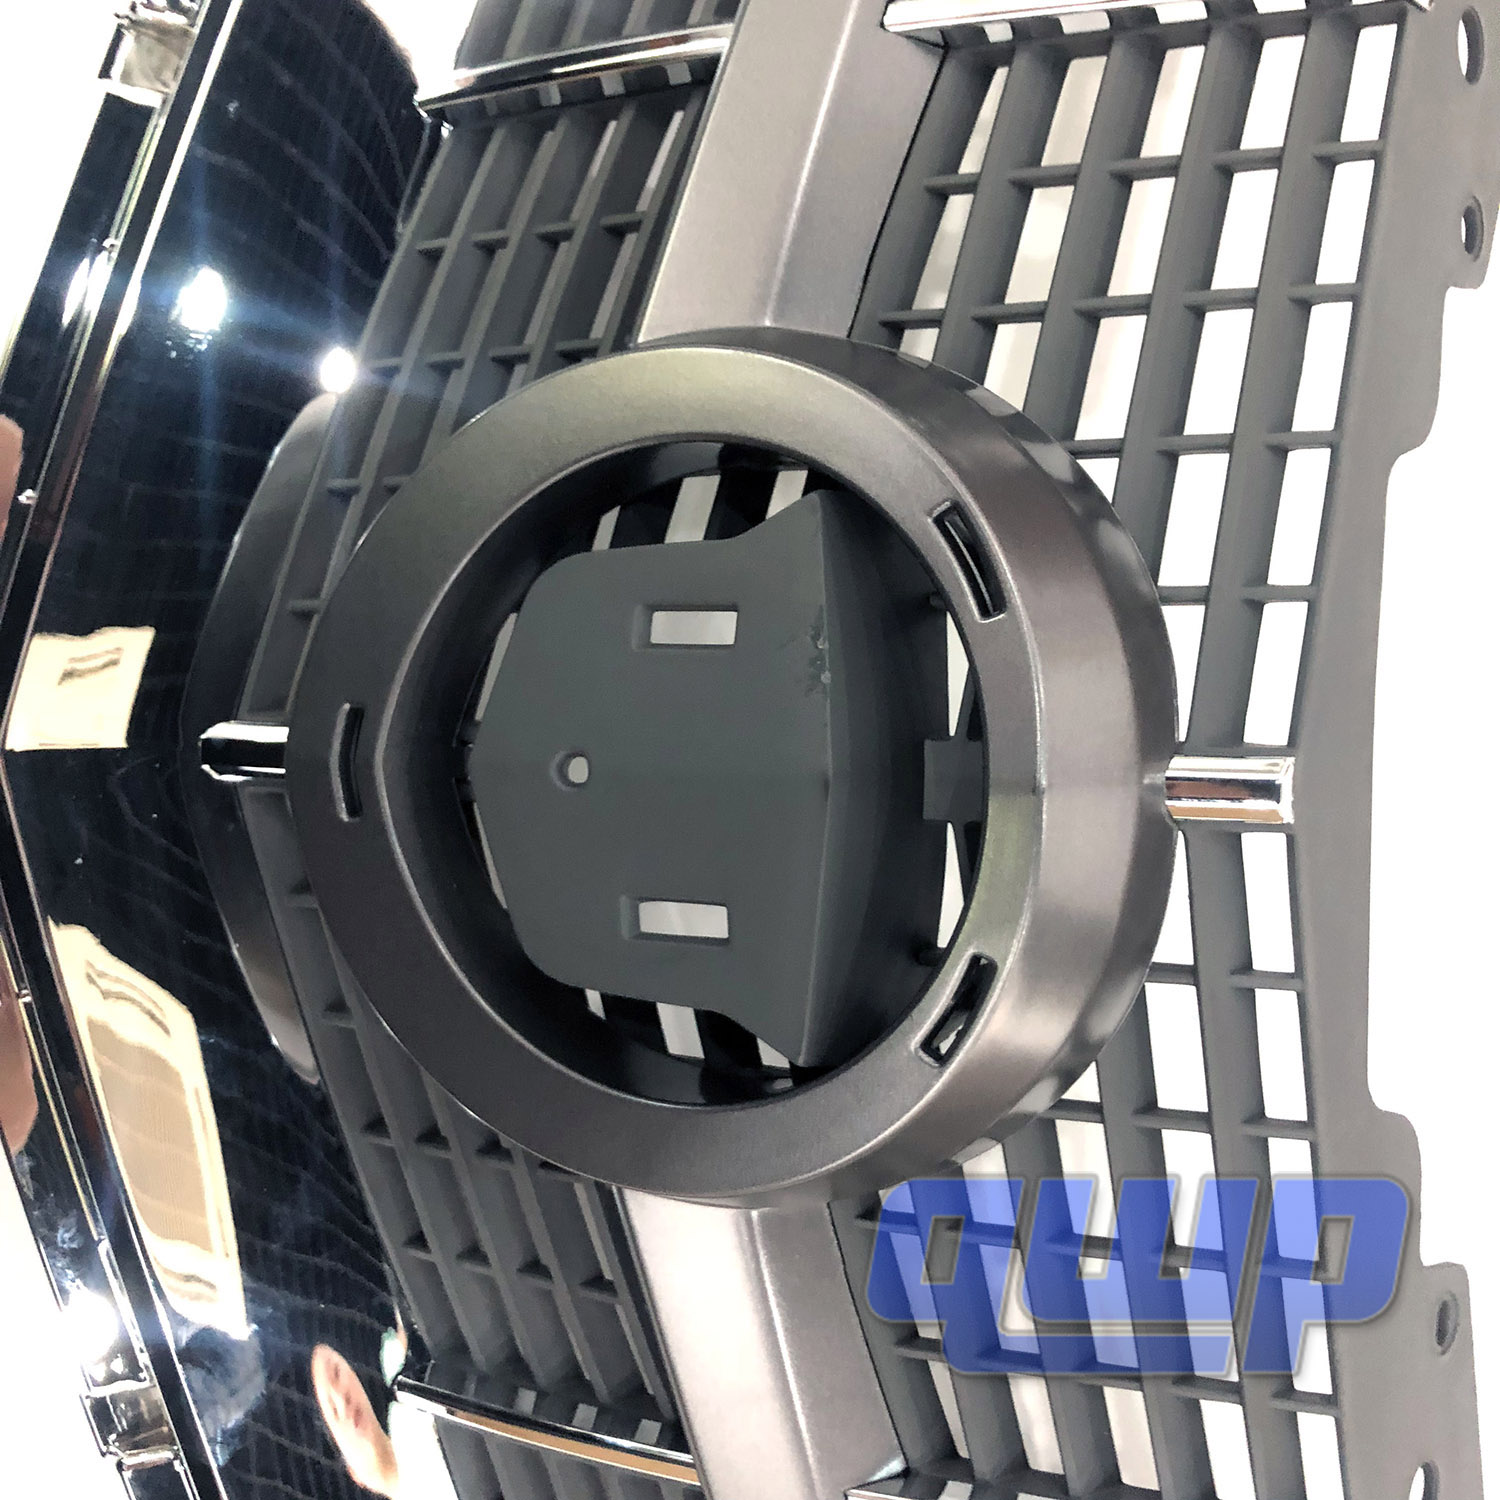 25778321 New Upper Center Grill Grille For 2010 2011 2012